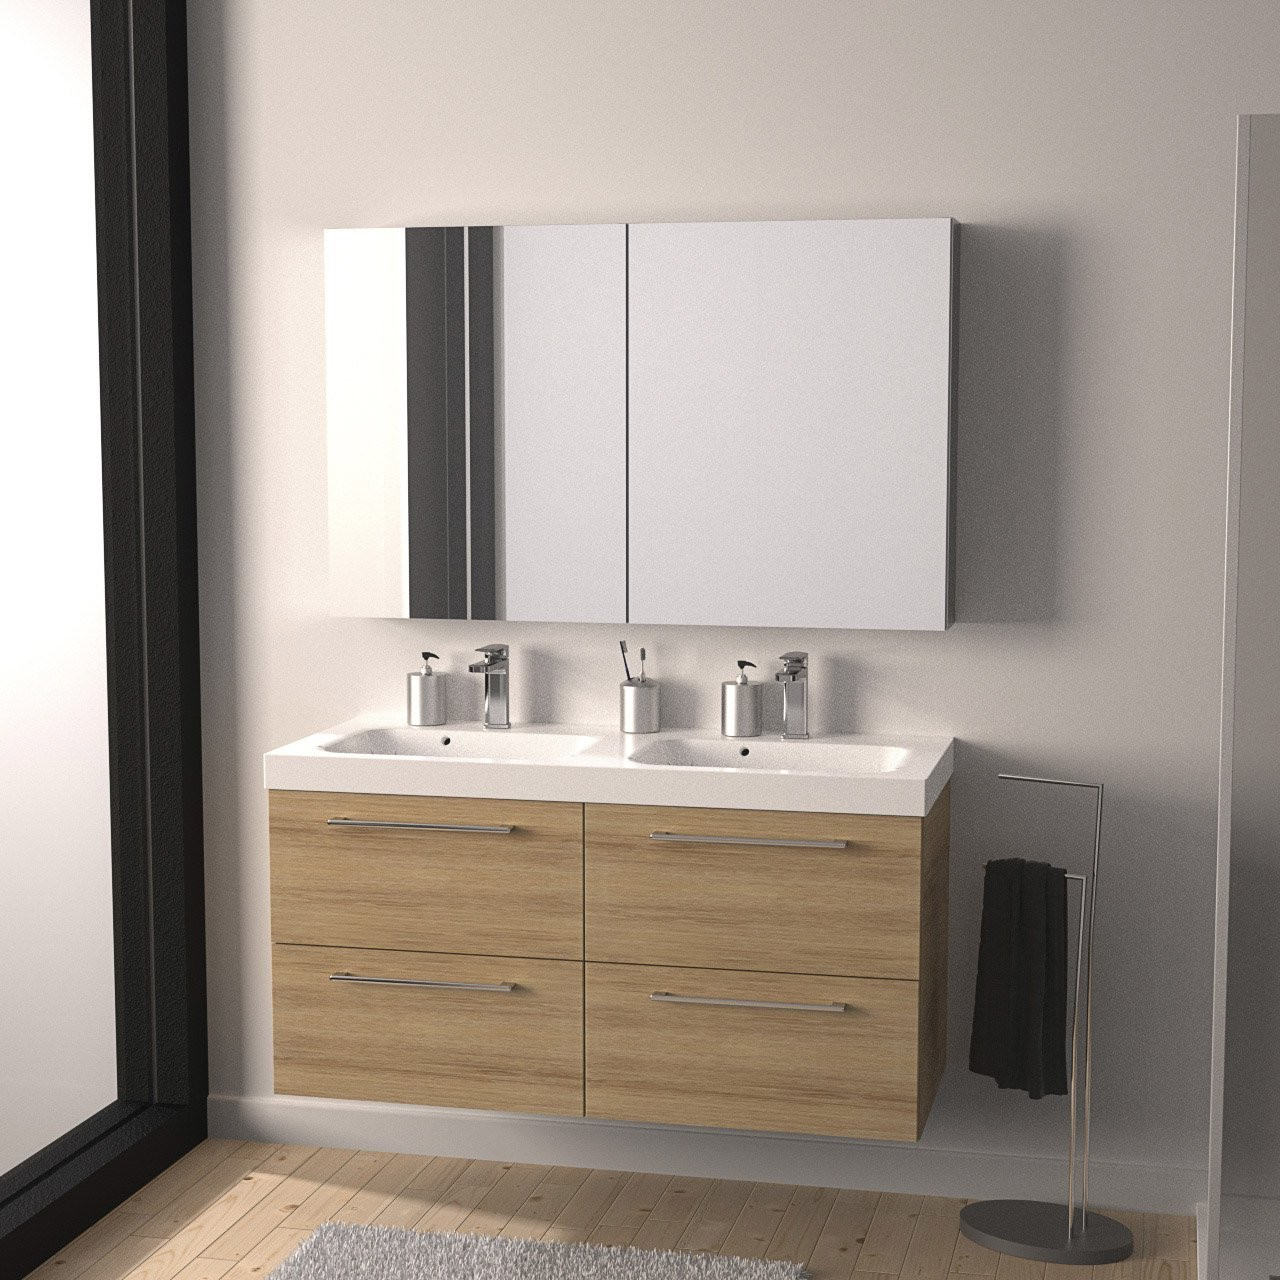 miroir salle de bain leroy merlin salle de bain id es de d coration de maison 2eybj86lo7. Black Bedroom Furniture Sets. Home Design Ideas